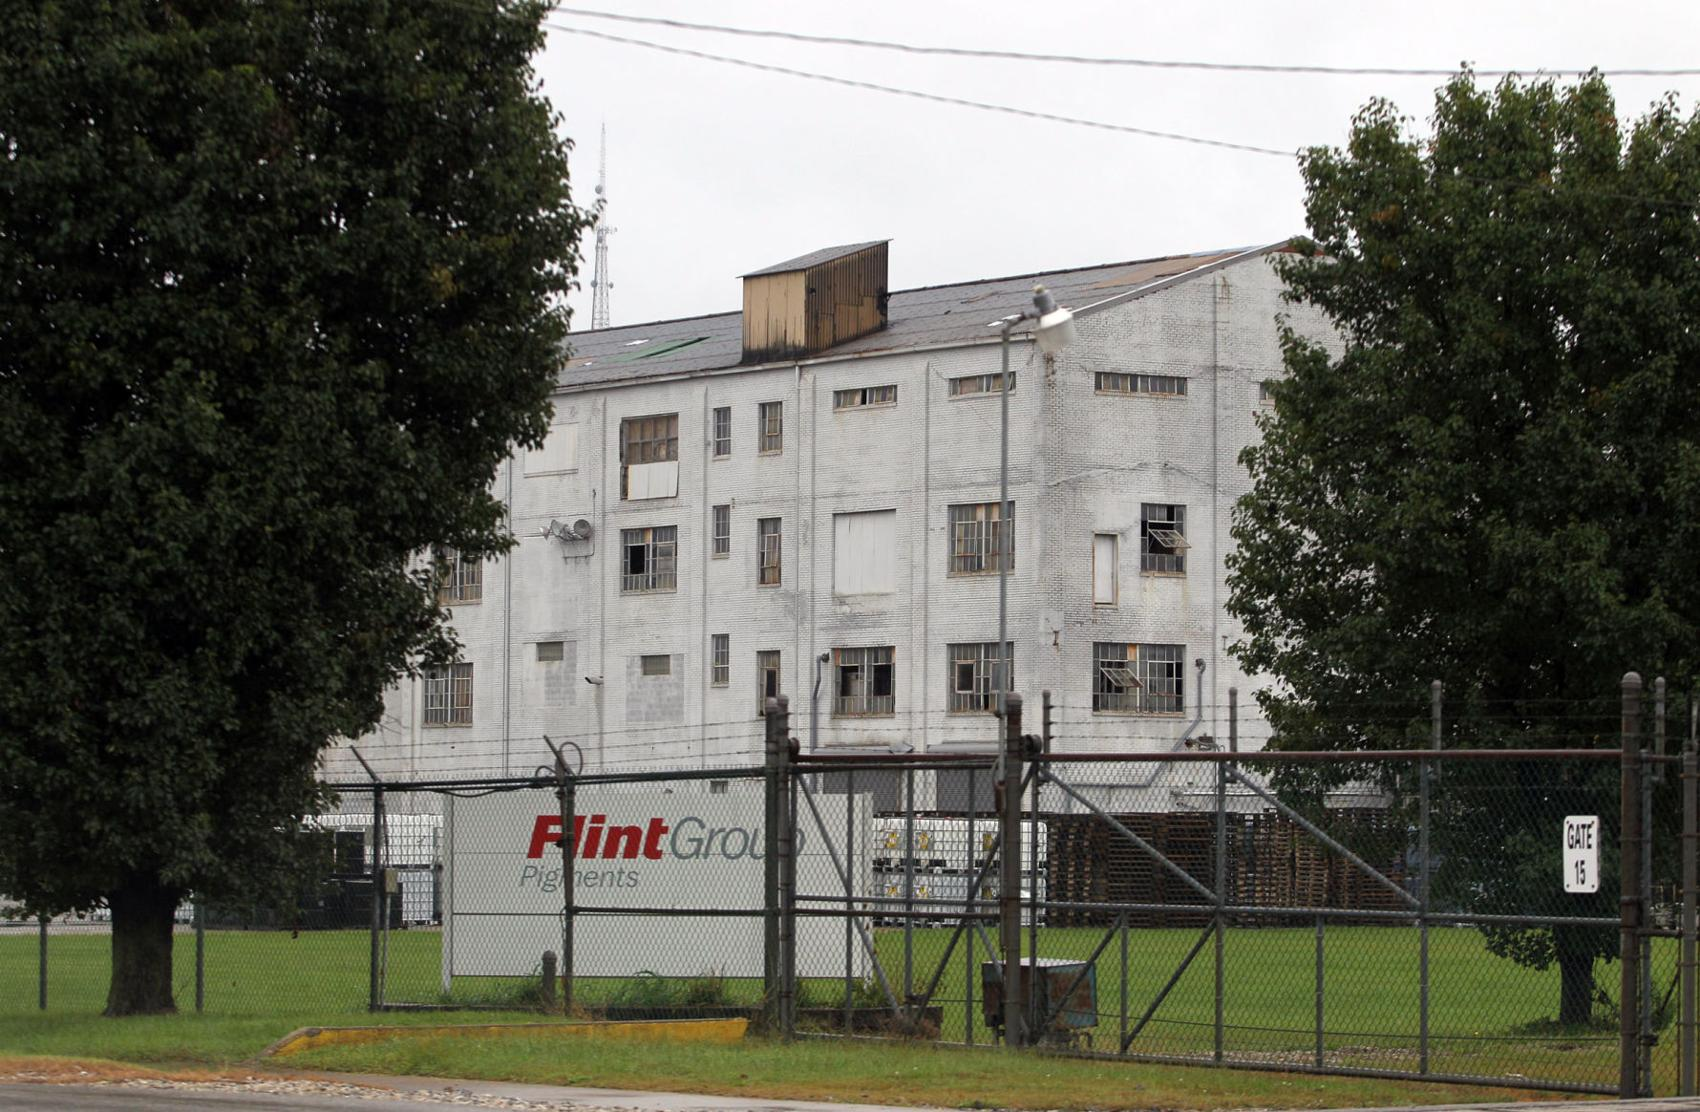 The Flint Group Pigments plant, circa 2017